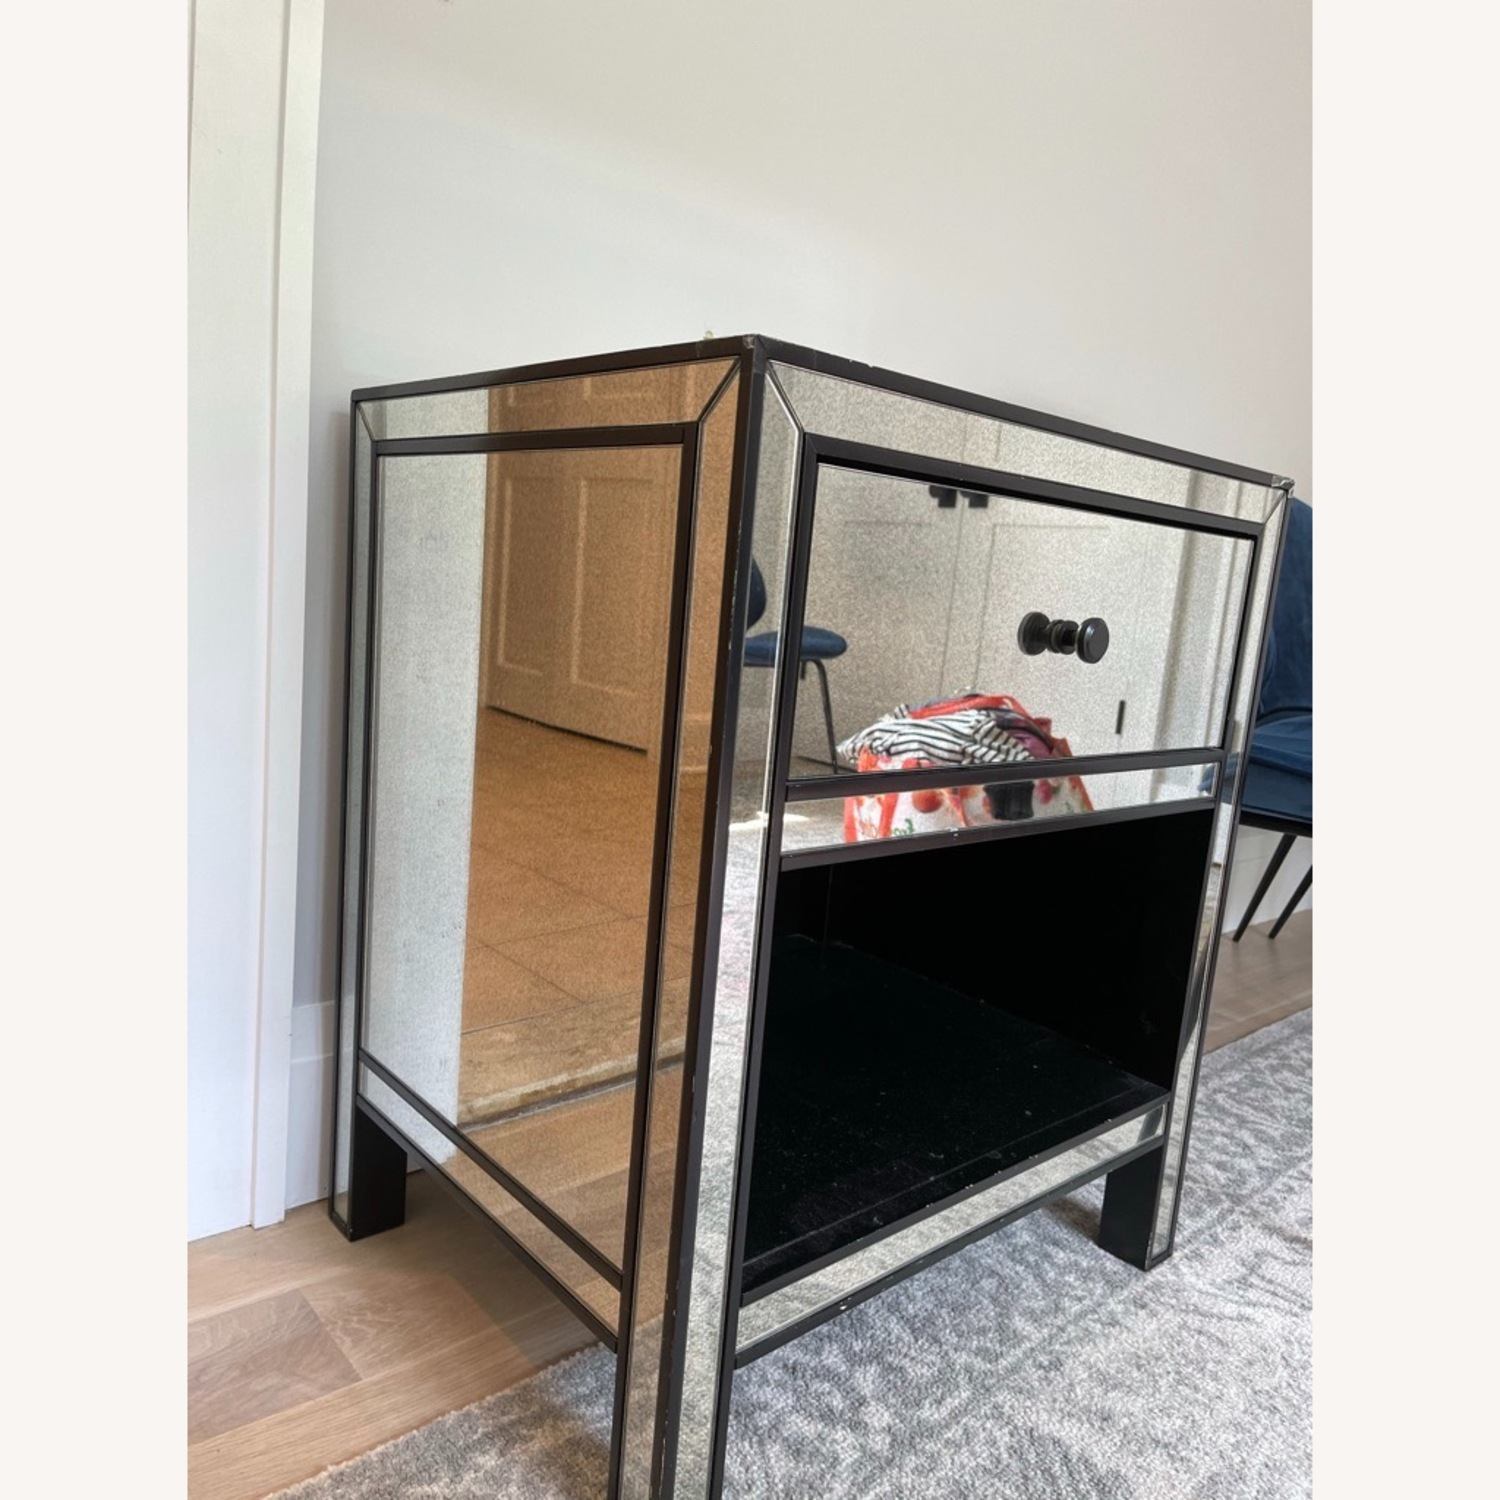 Pottery Barn Mirrored Bedside Tables - image-3